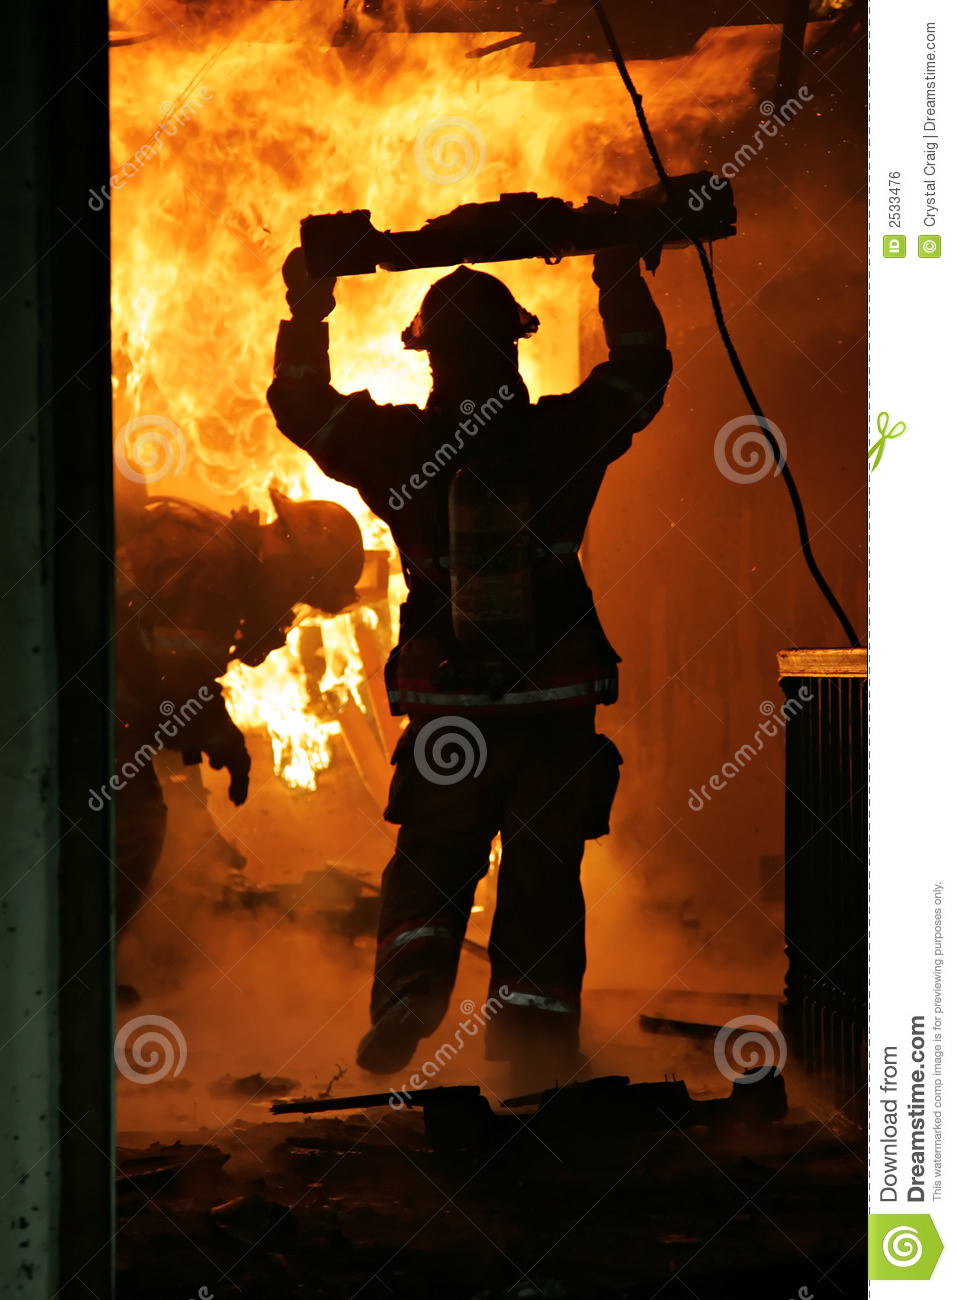 Firefighters Inside House Royalty Free Stock Image - Image: 2533476